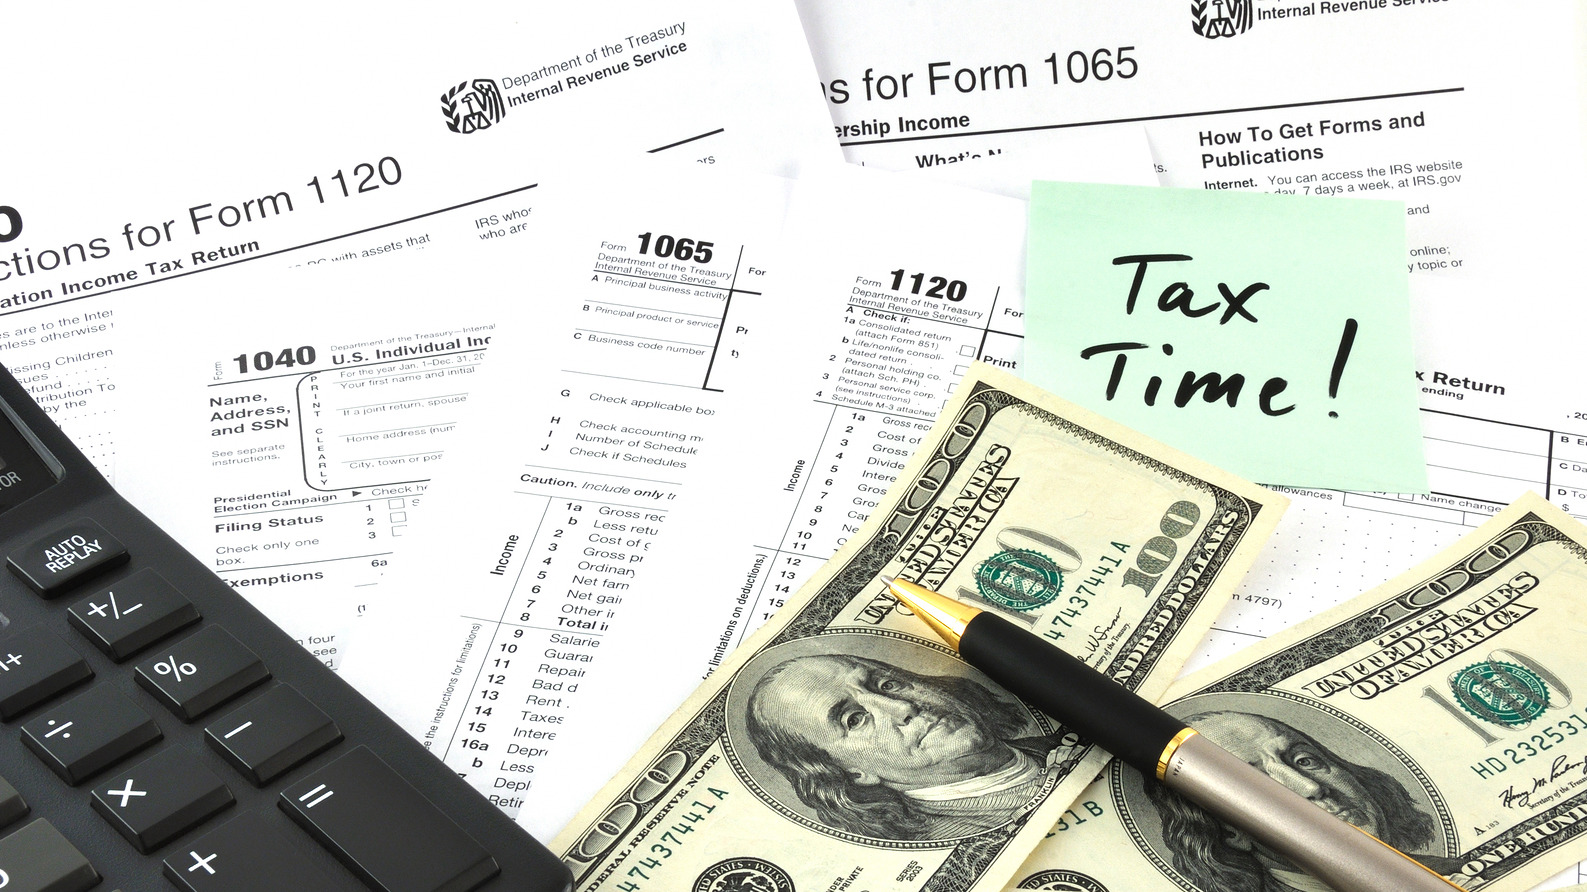 Need your taxes prepared?